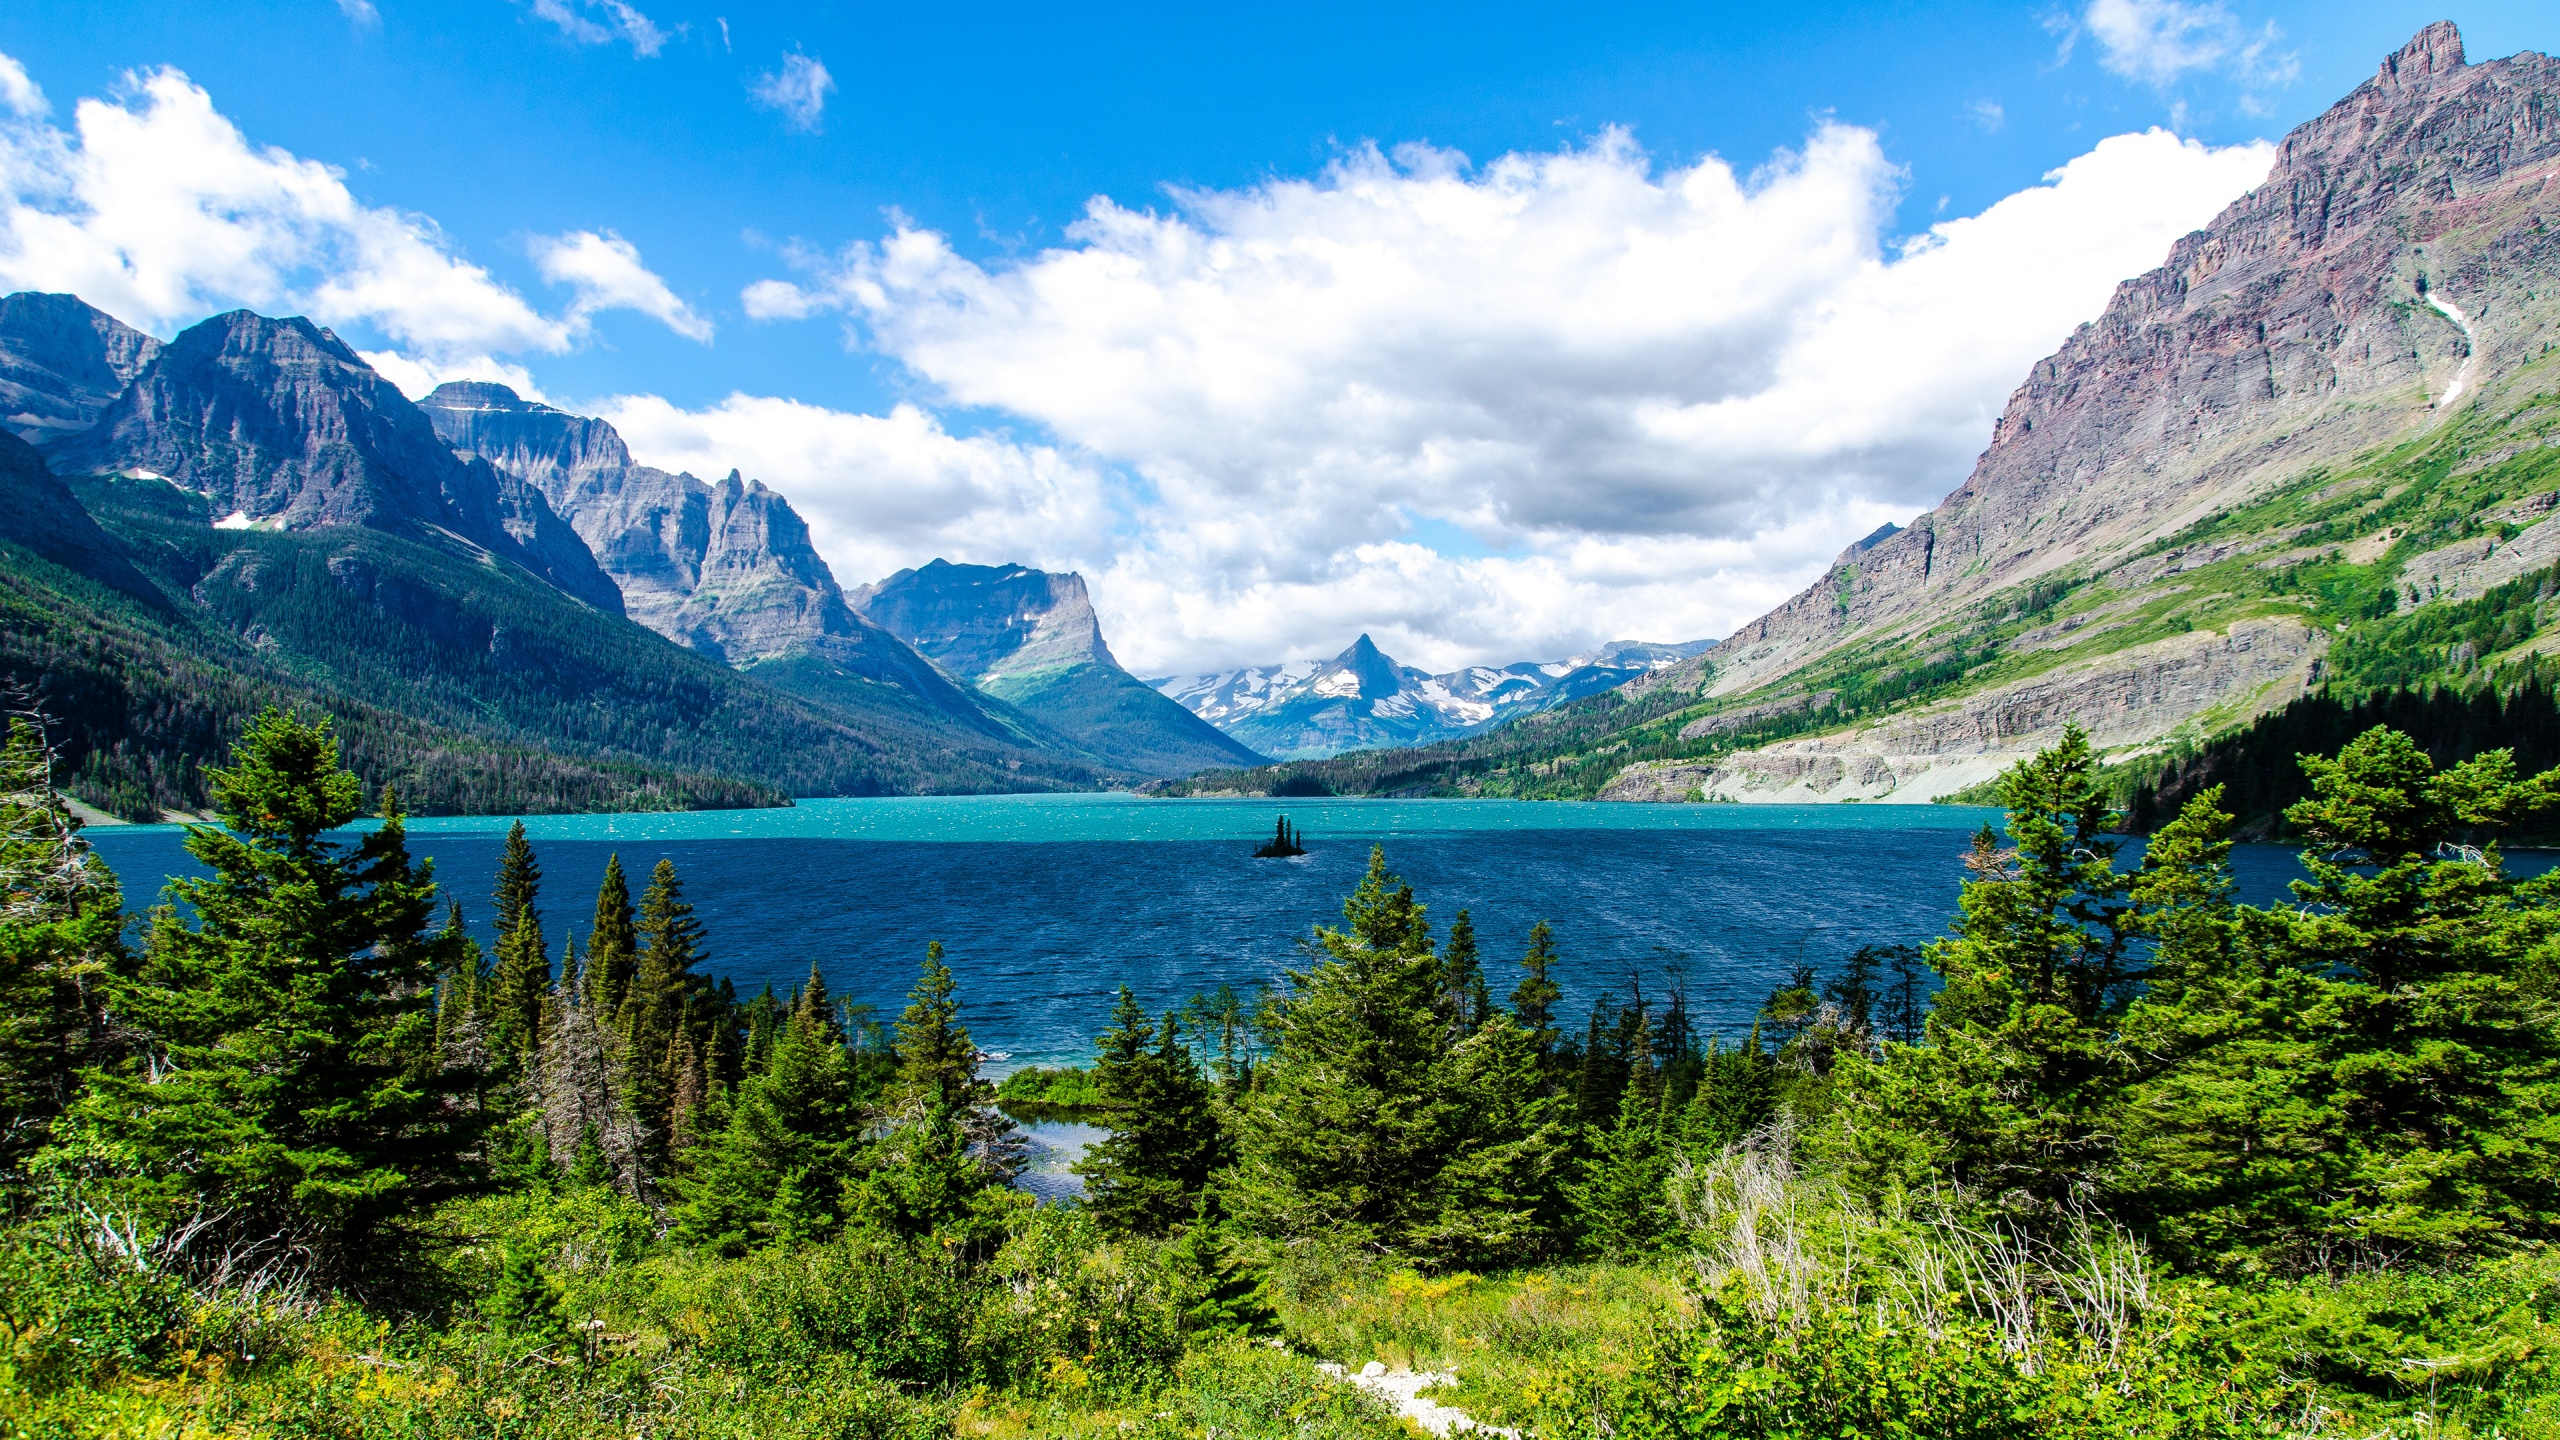 Saint Mary Lake Glacier National Park Wallpapers HD Wallpapers 2560x1440